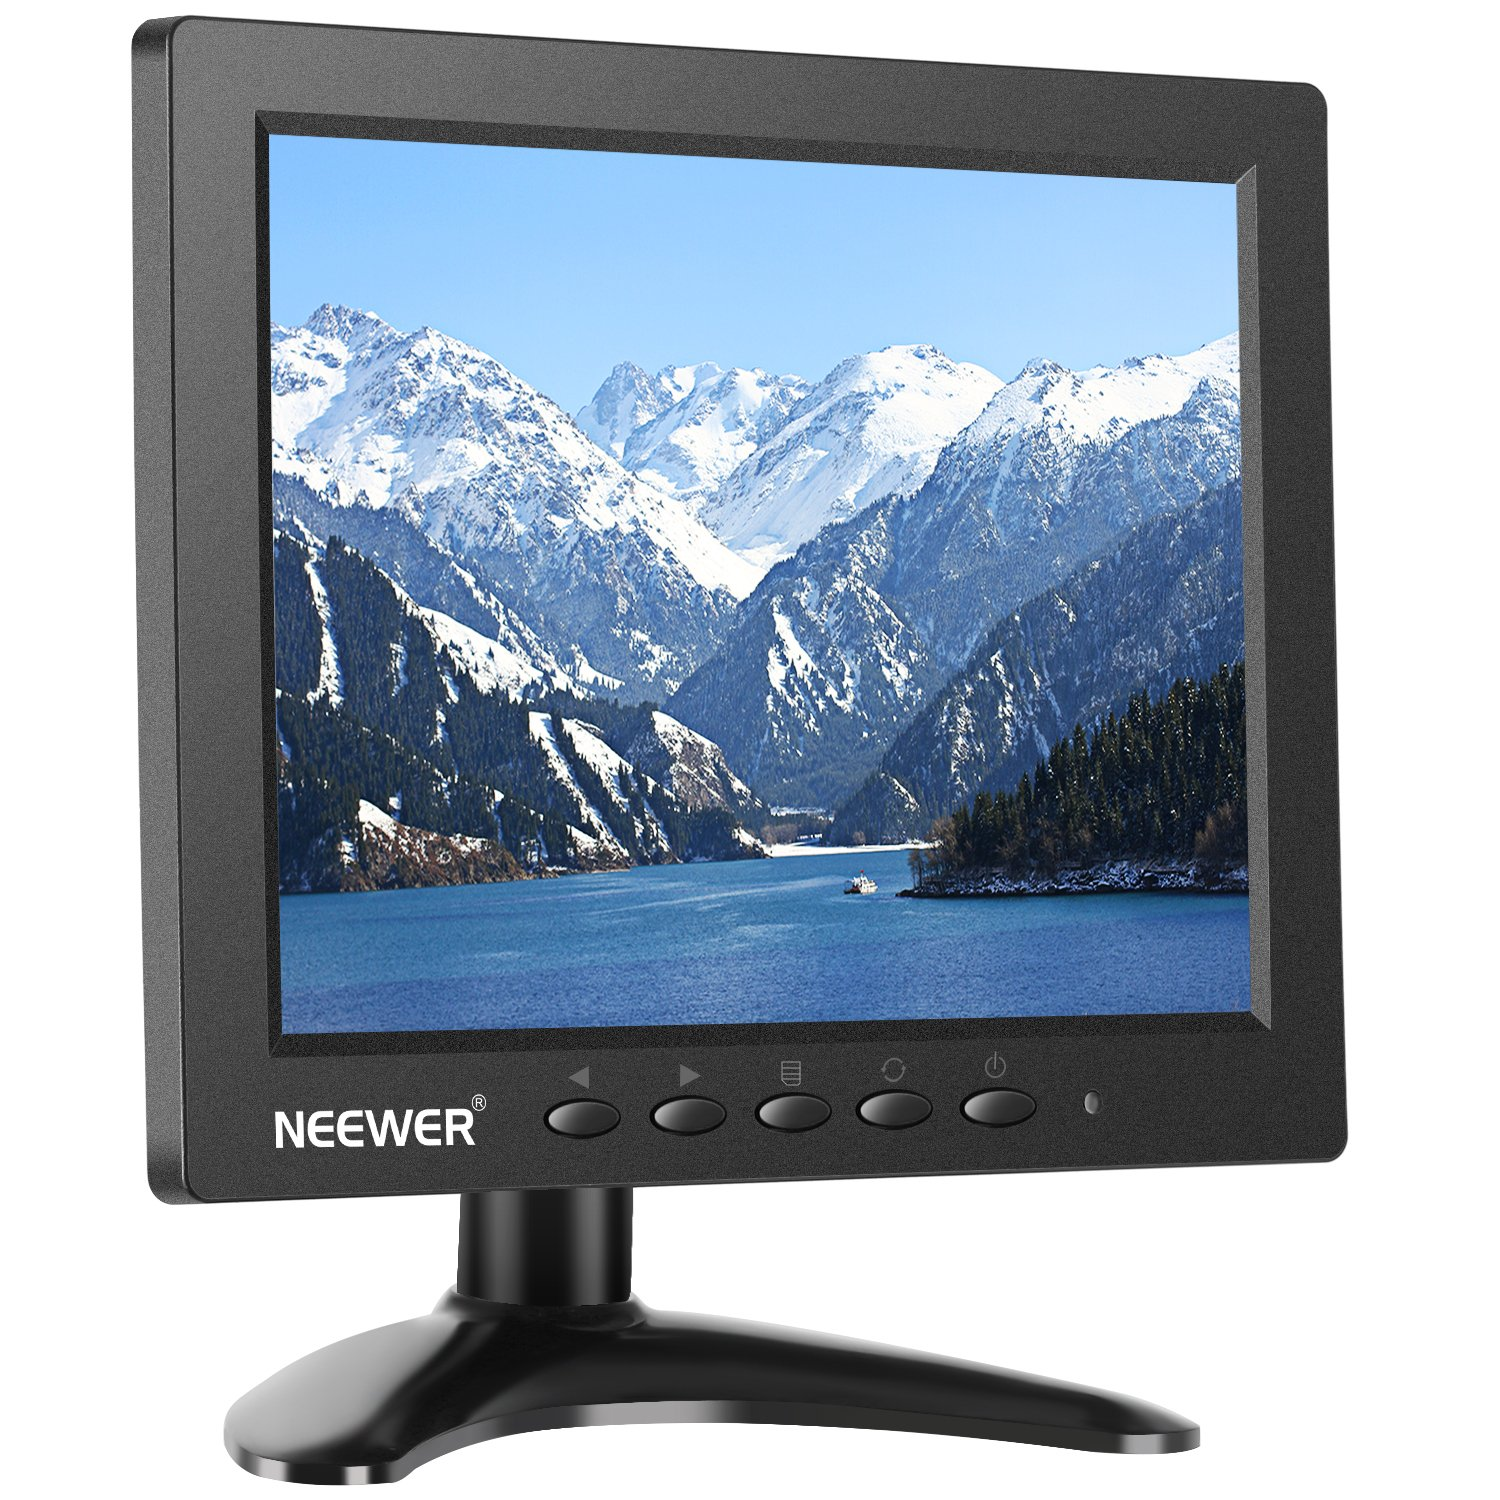 Neewer NW801H 8 inches Monitor with 4:3 TFT-LCD Screen 1024x768 Resolution,500:1 Contrast,HDMI VGA BNC AV Input Audio,Built-in Speaker for DSLR, PC, CCTV Camera, DVD and Car Backup Camera by Neewer